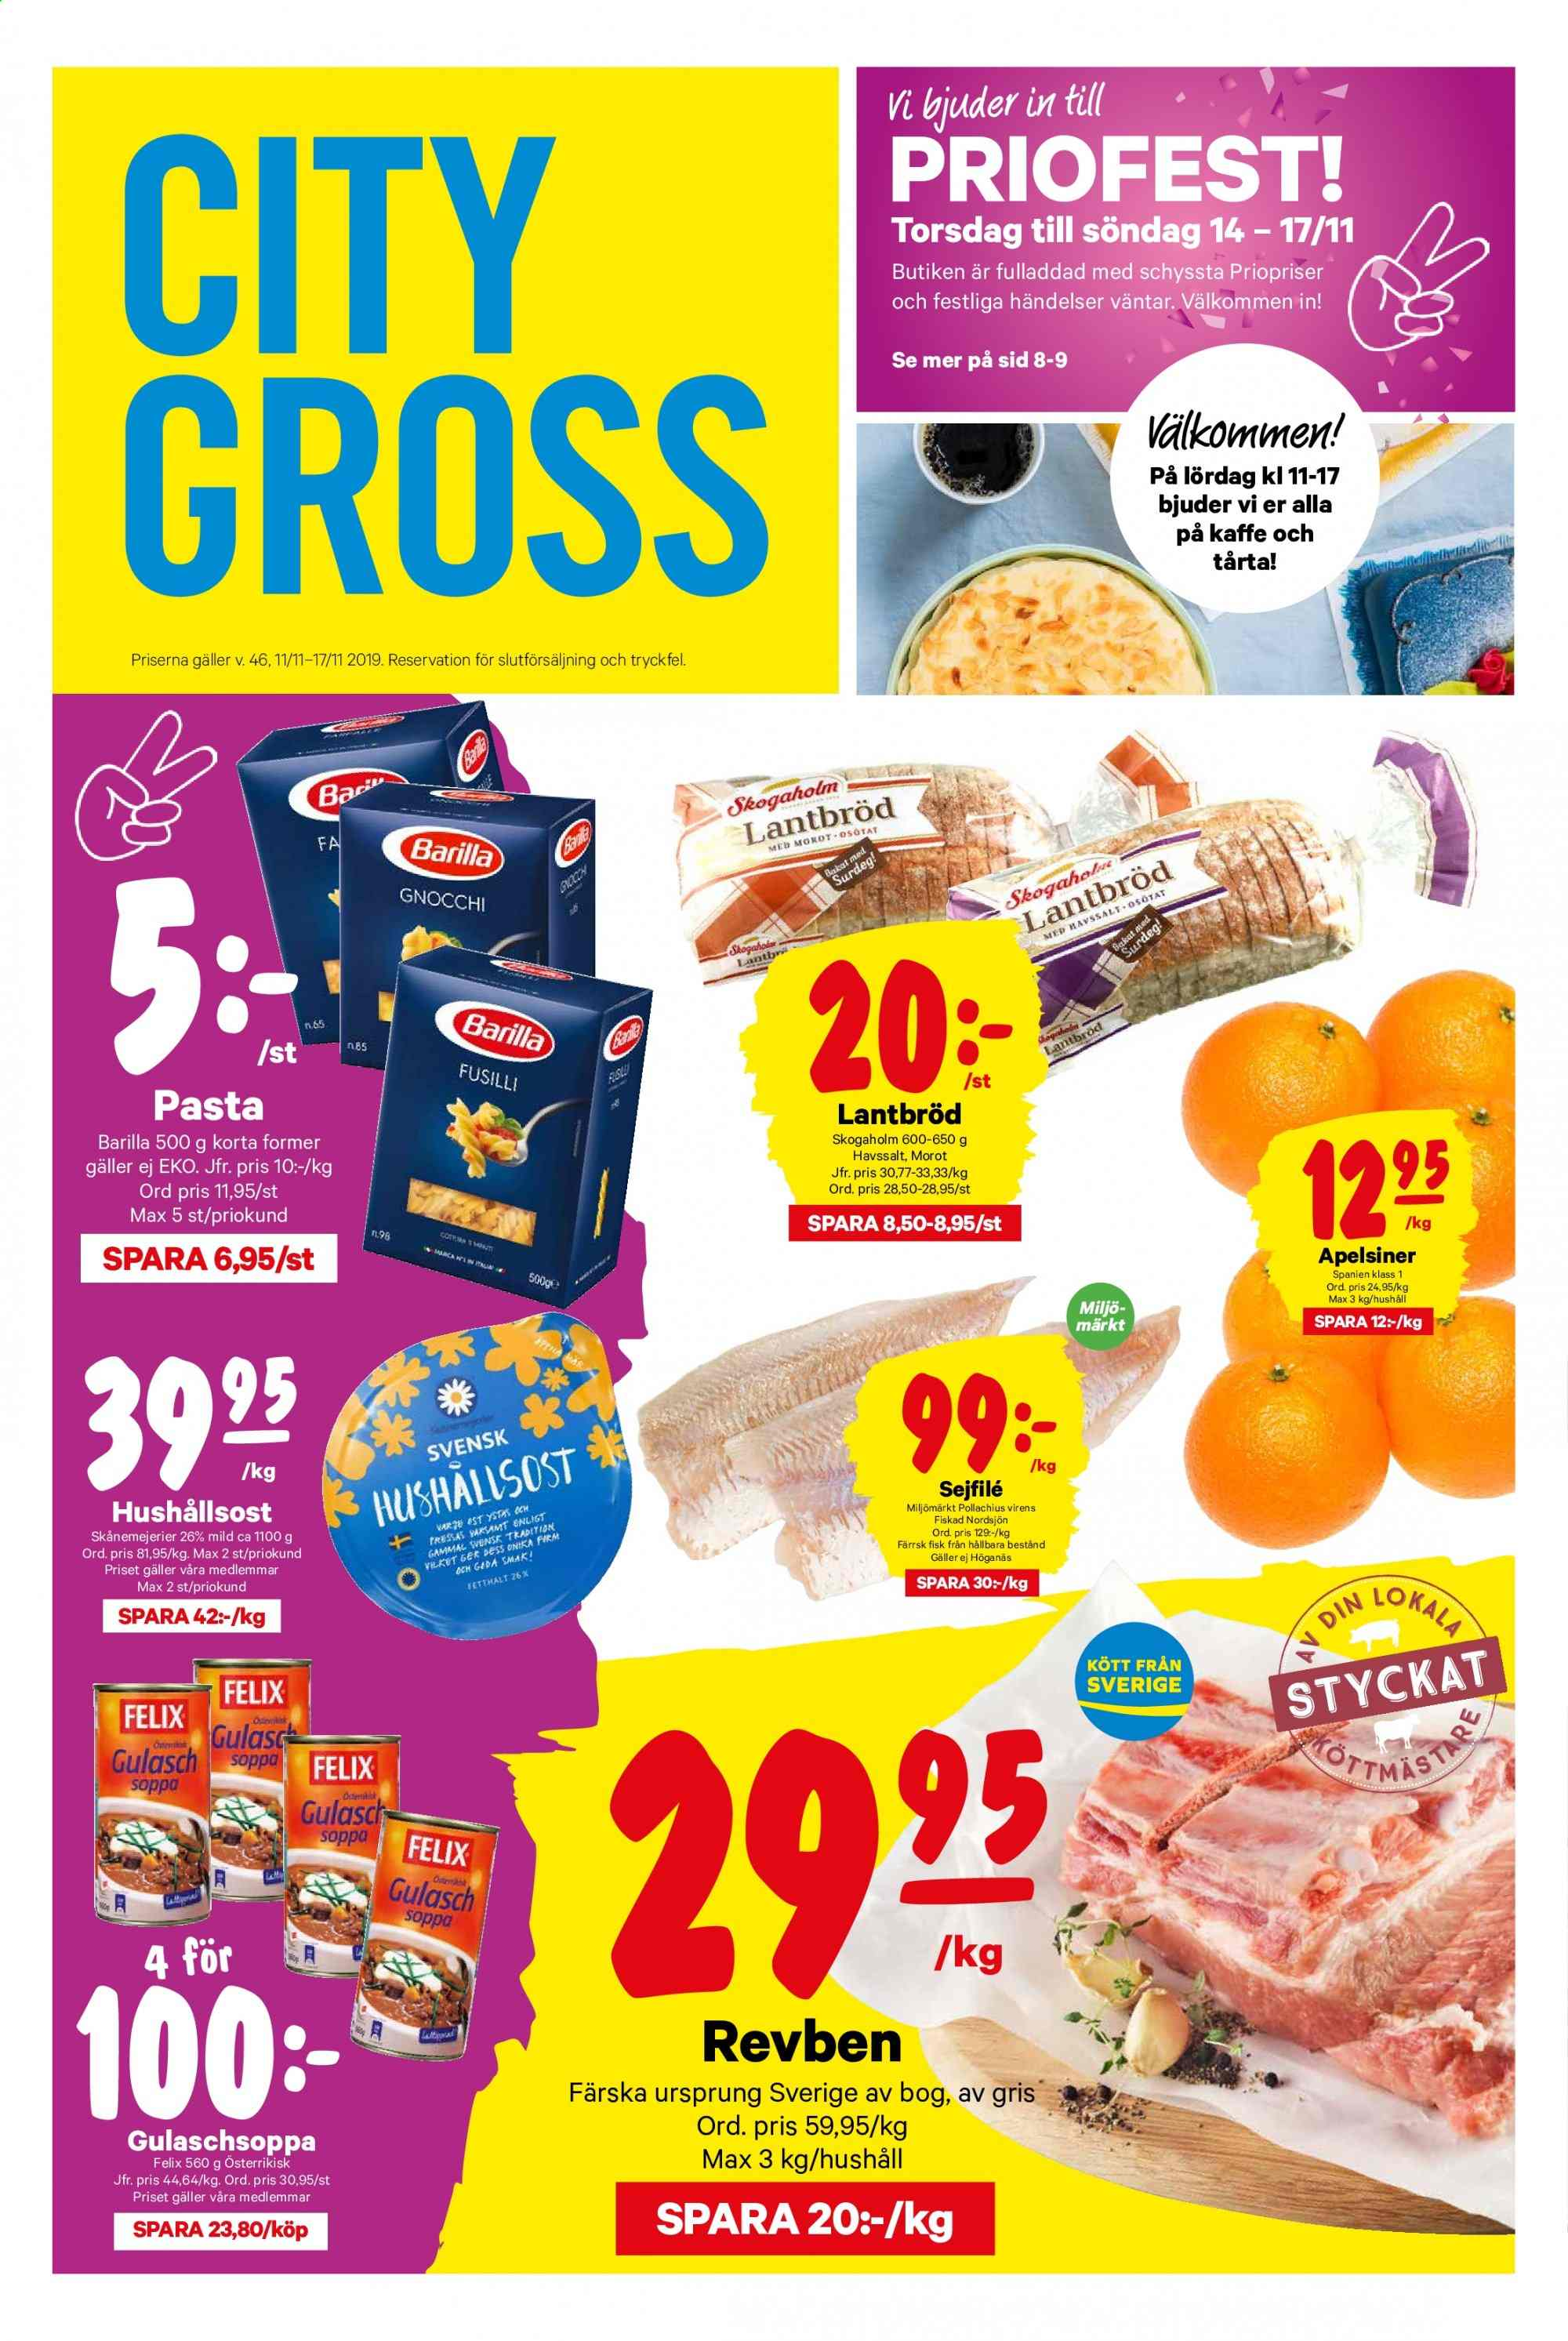 City Gross reklamblad - 11/11 2019 - 17/11 2019. Sida 1.